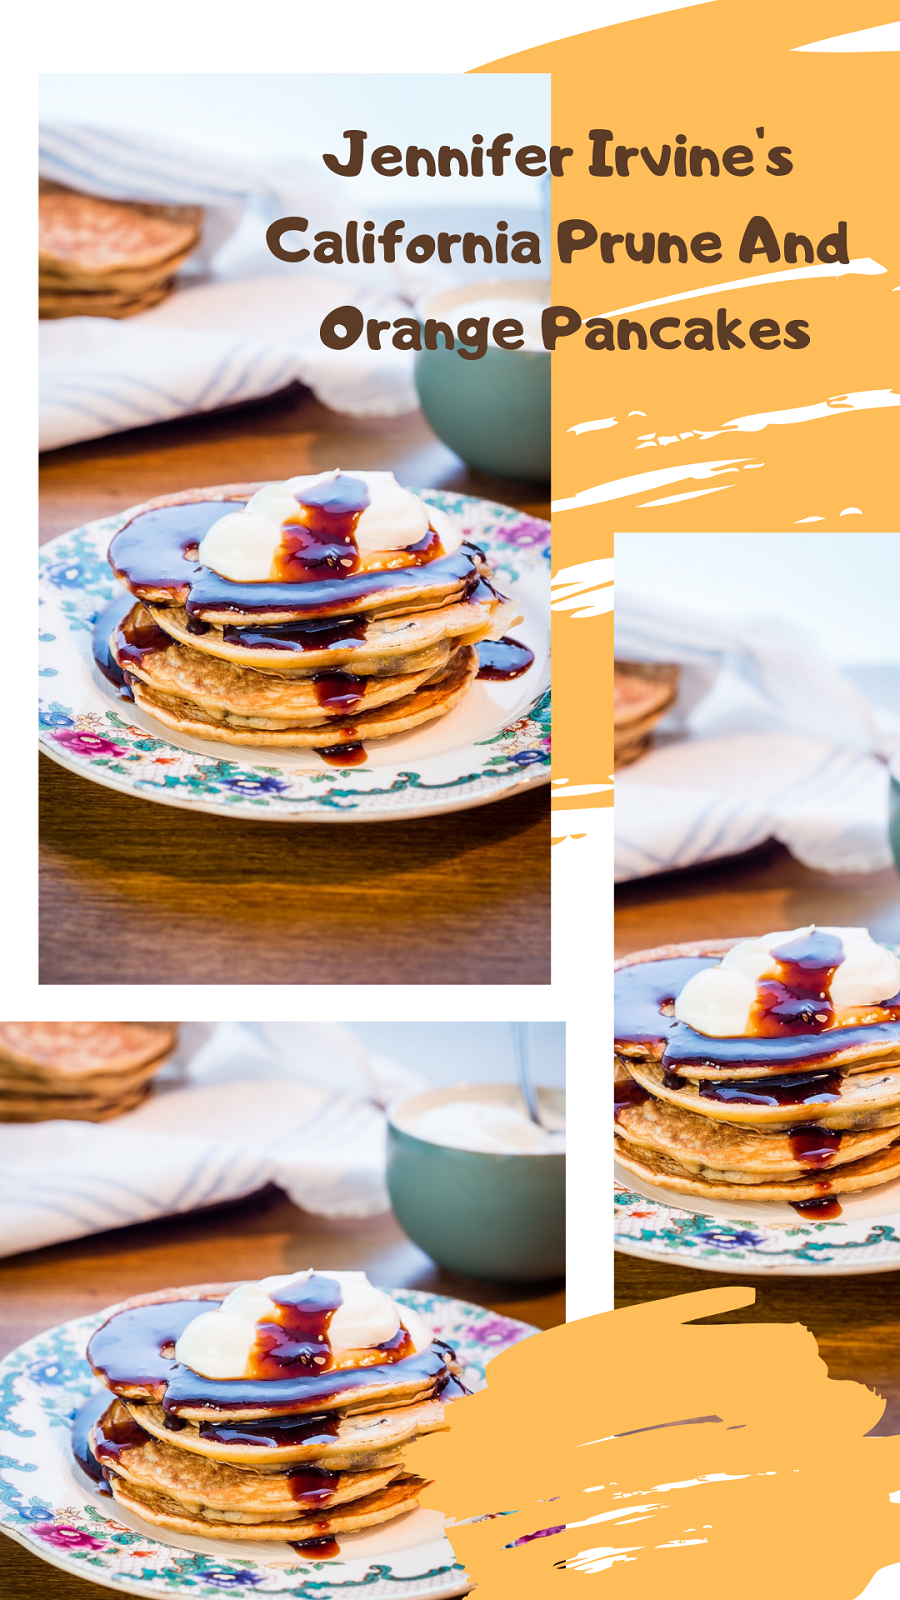 Jennifer Irvine's California Prune And Orange Pancakes